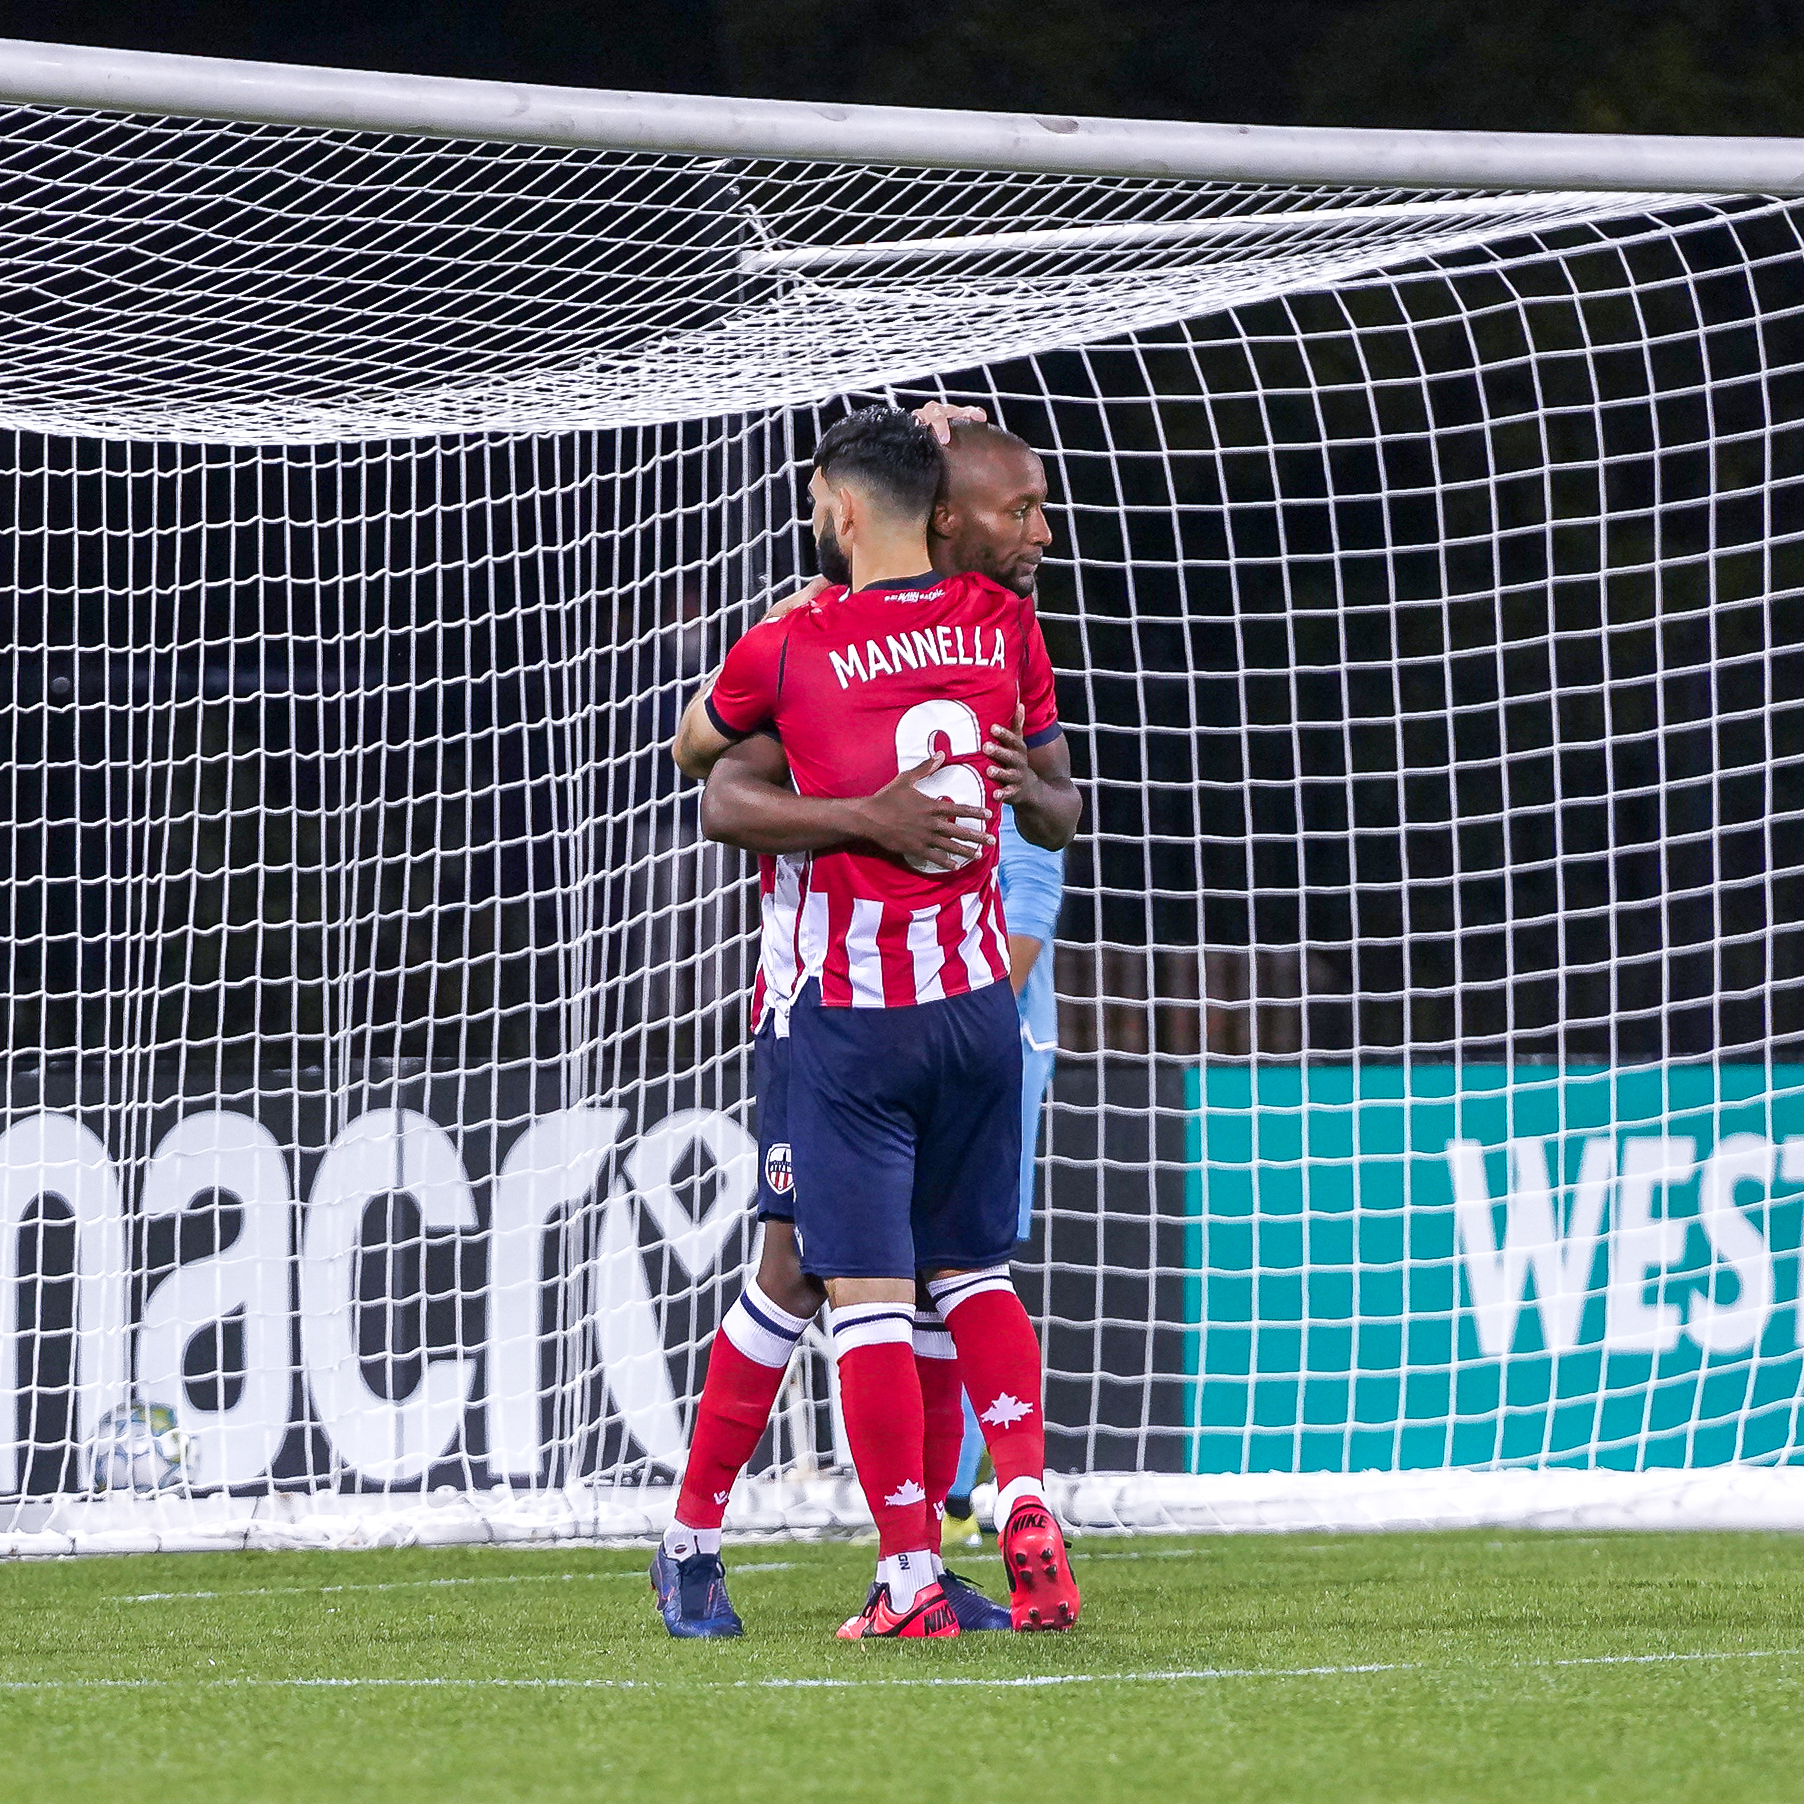 Malcolm Shaw and Chris Mannella embrace after the former scores a penalty vs. York United. (York United/CPL)